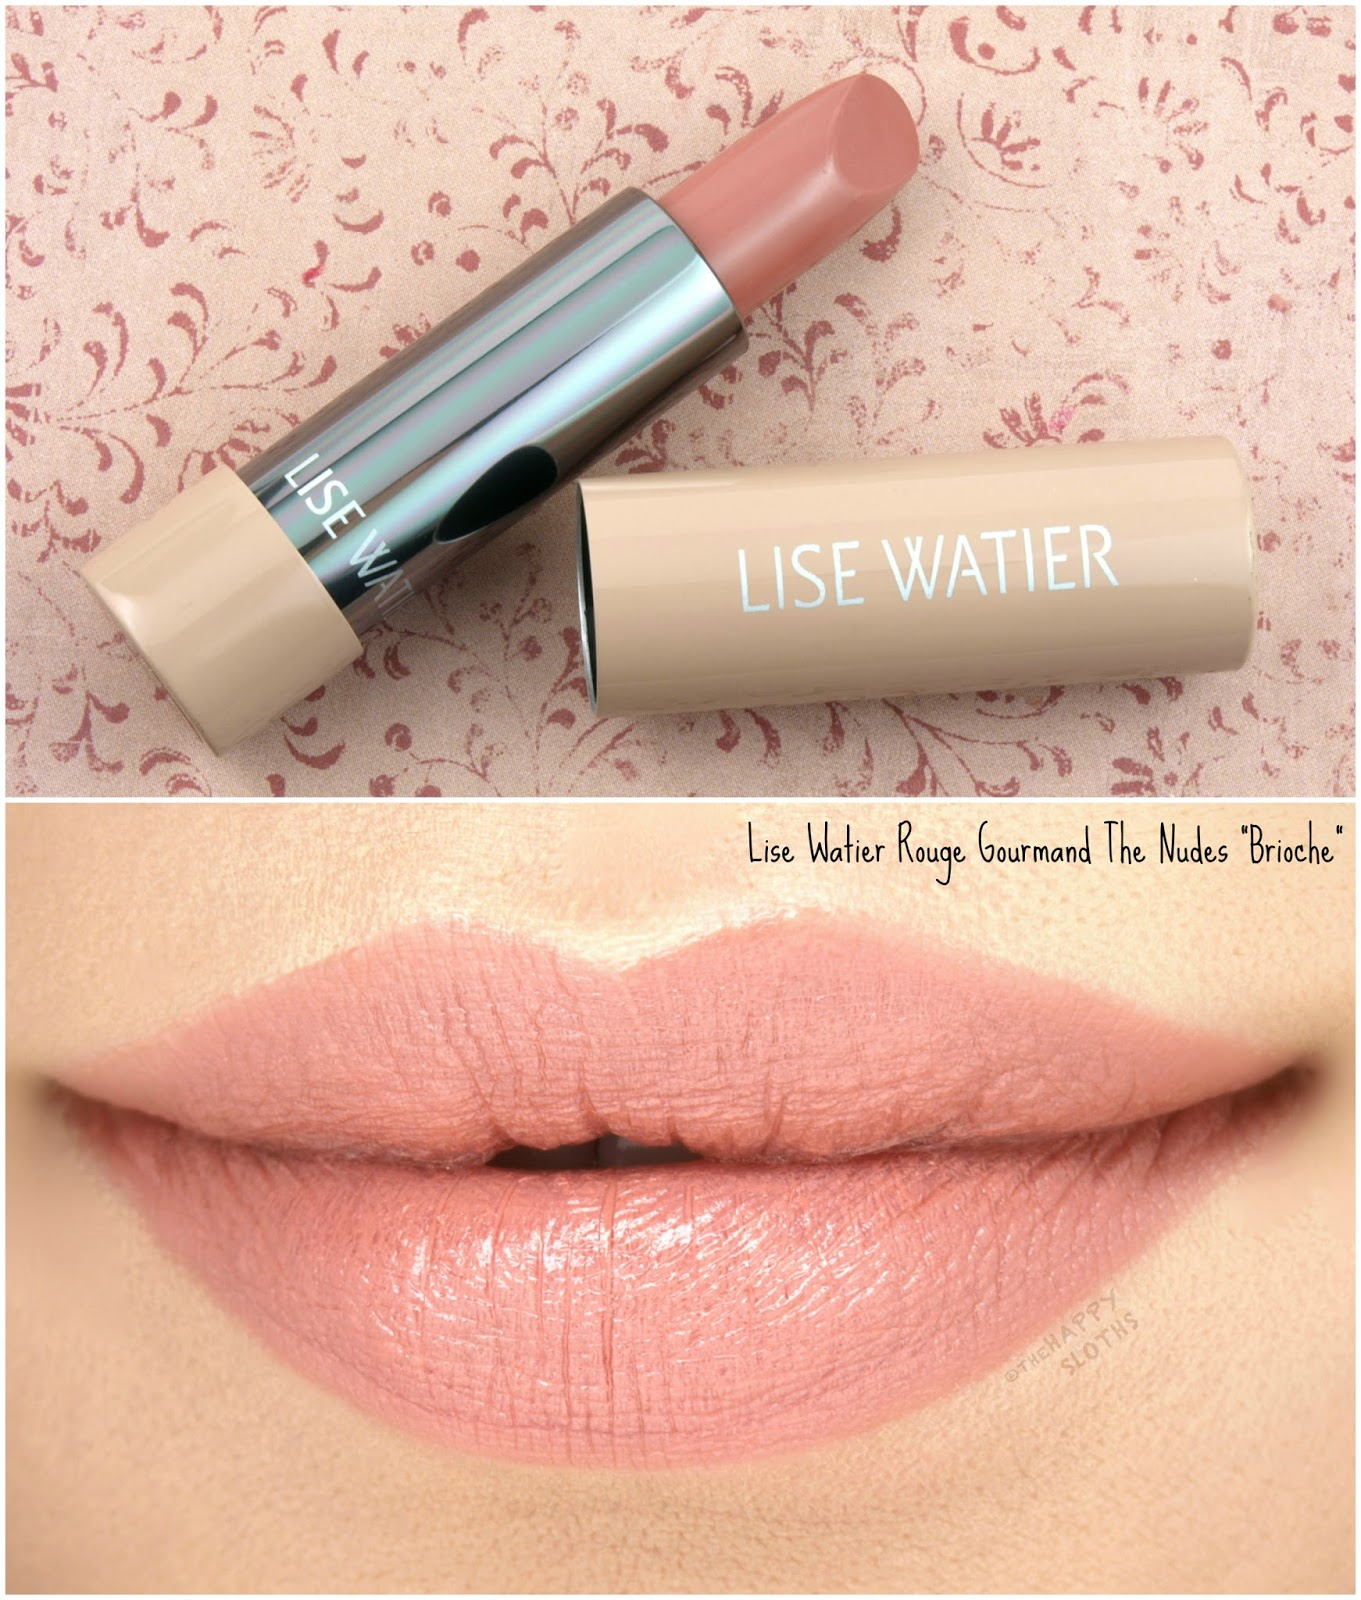 Lise Watier Rouge Gourmand The Nudes Lipstick   Brioche: Review and Swatches